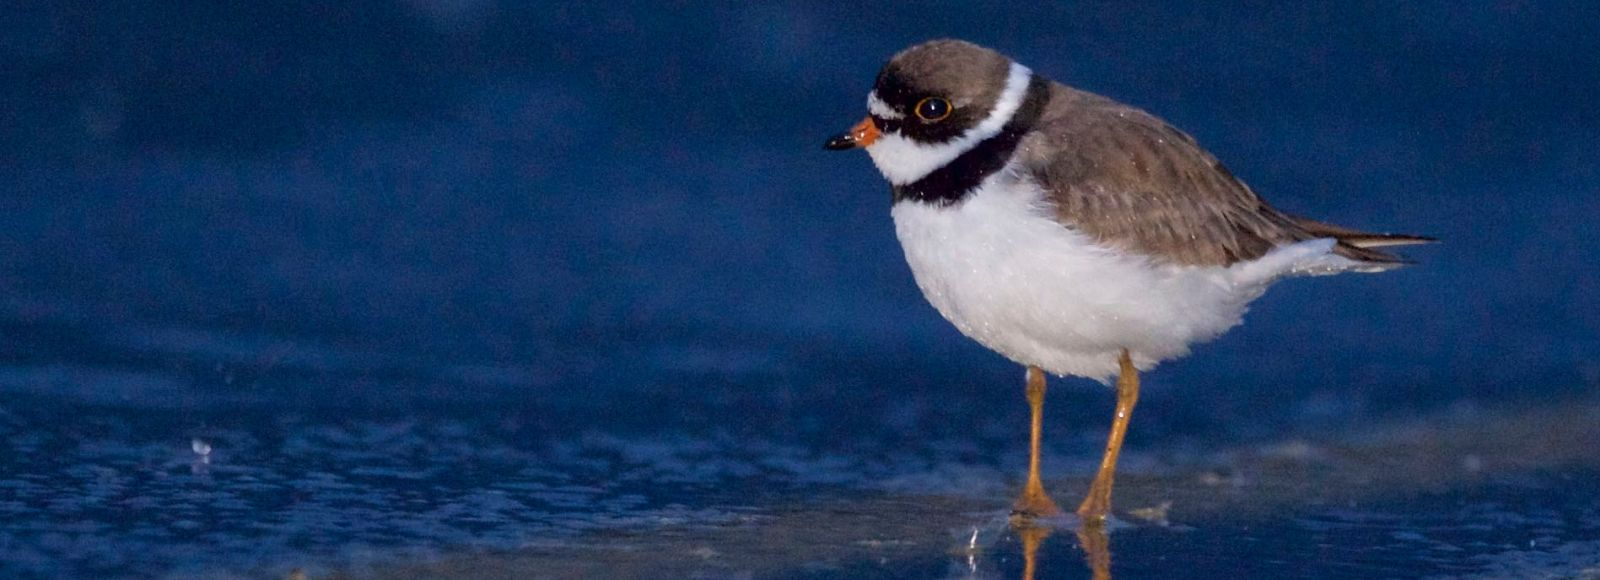 Semi-palmated plover, a tiny white-breasted brown bird with black ringlet wades in bright blue water